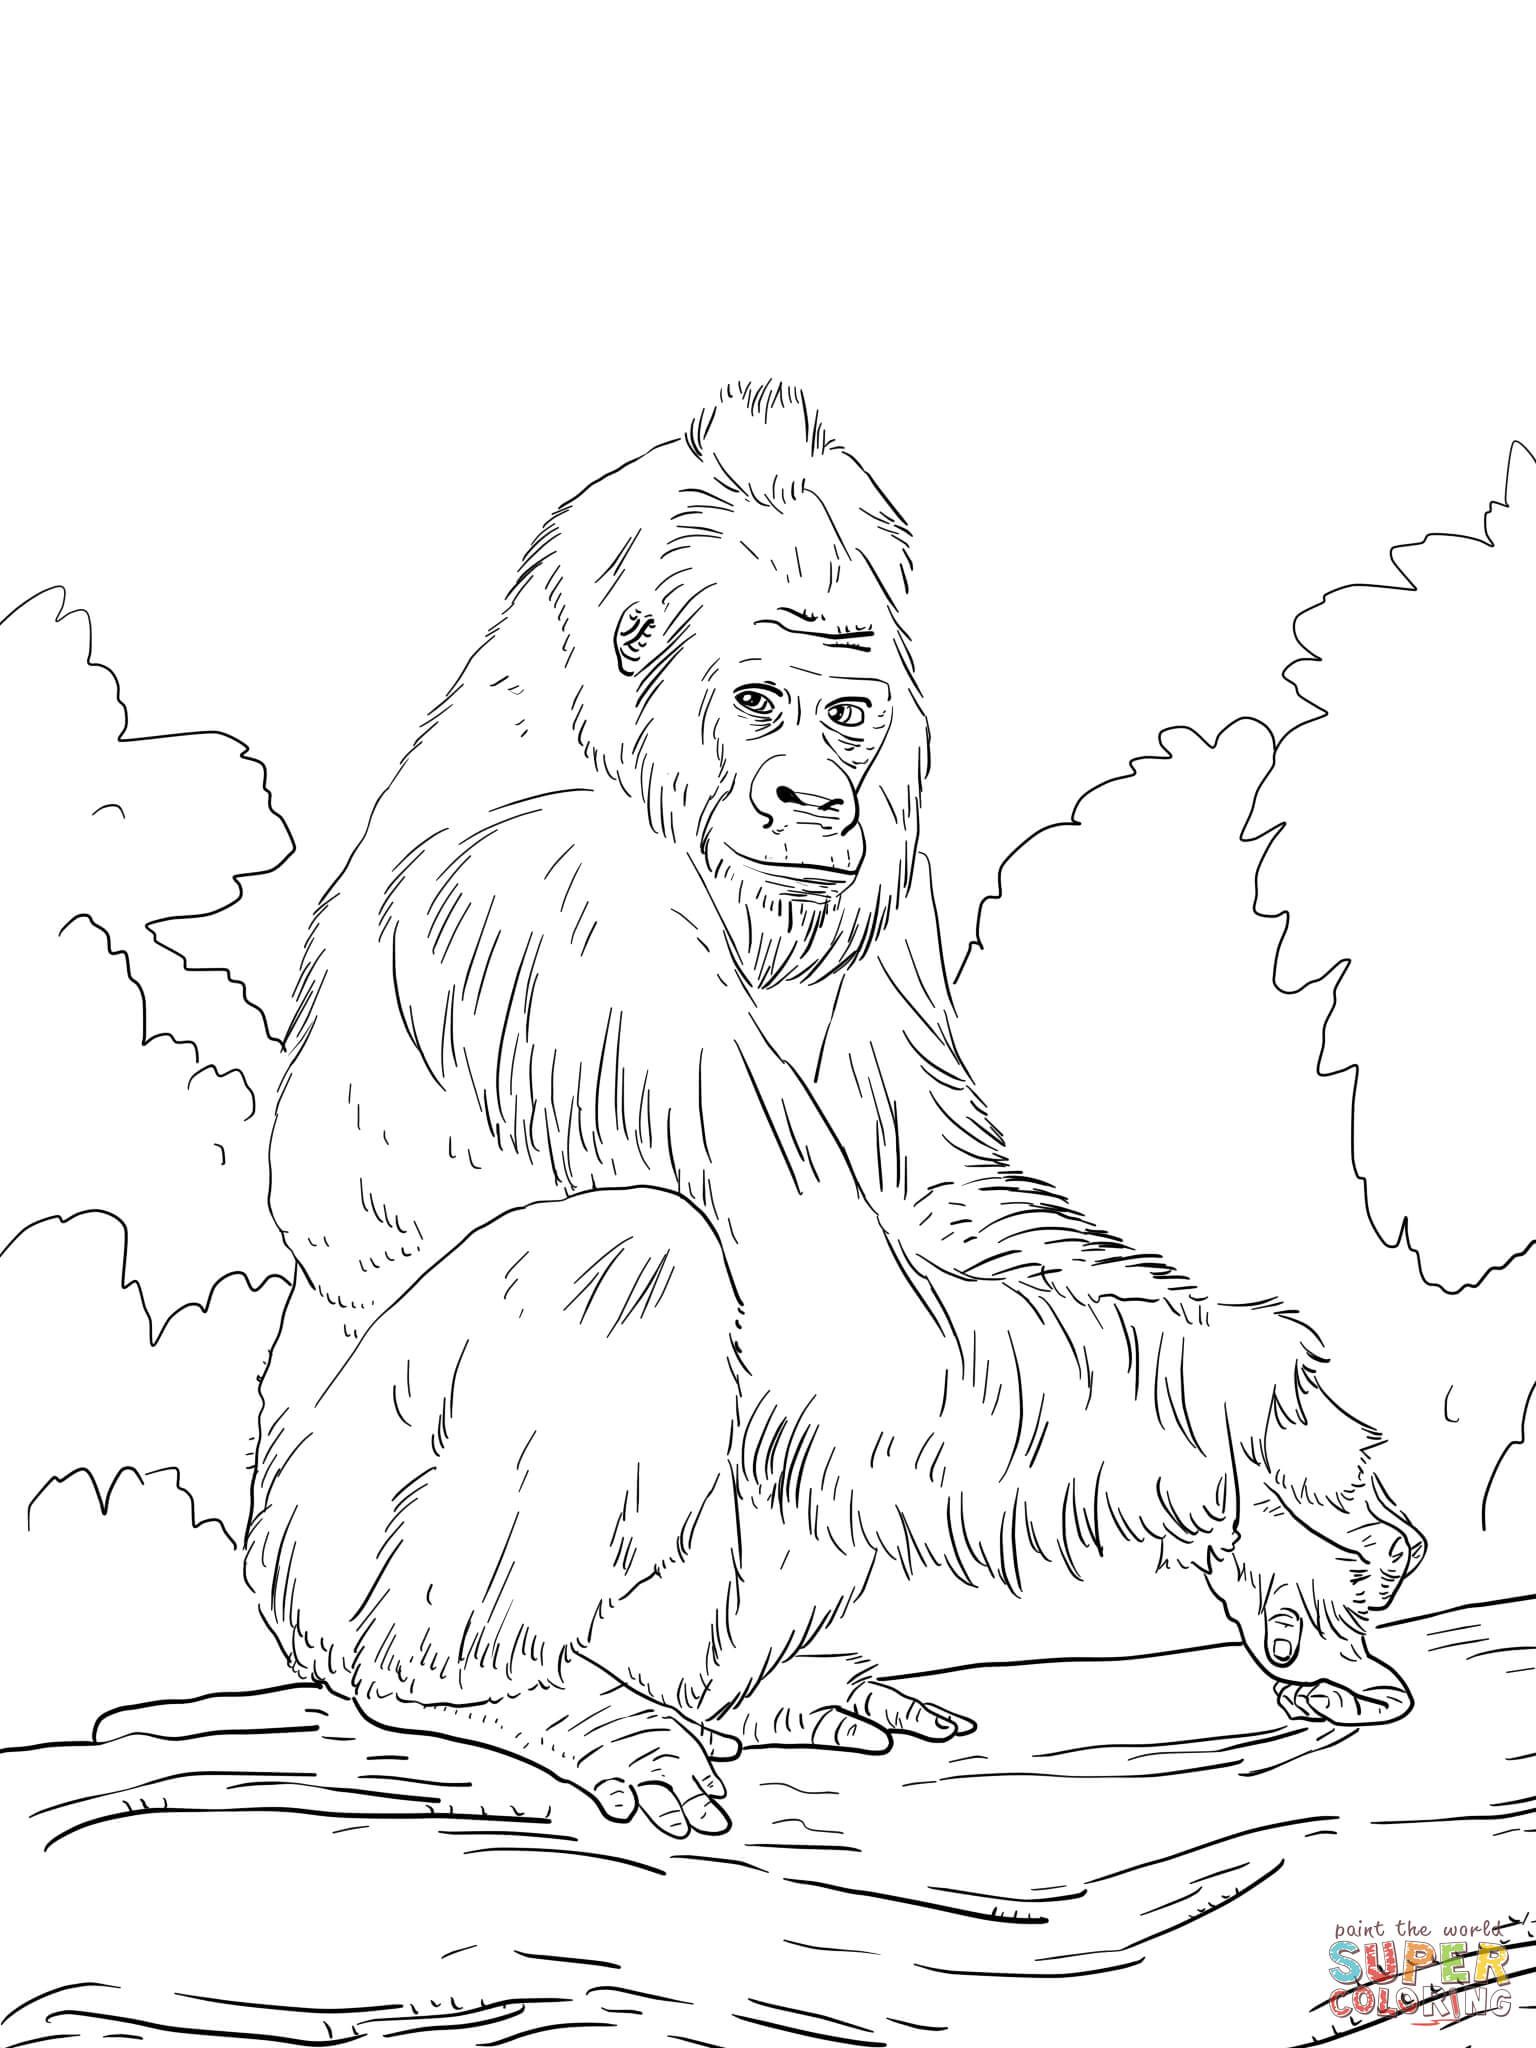 Western Lowland Gorilla Coloring Page From Gorillas Category Select From 27516 Printable Cr Animal Coloring Pages Coloring Pages Free Printable Coloring Pages